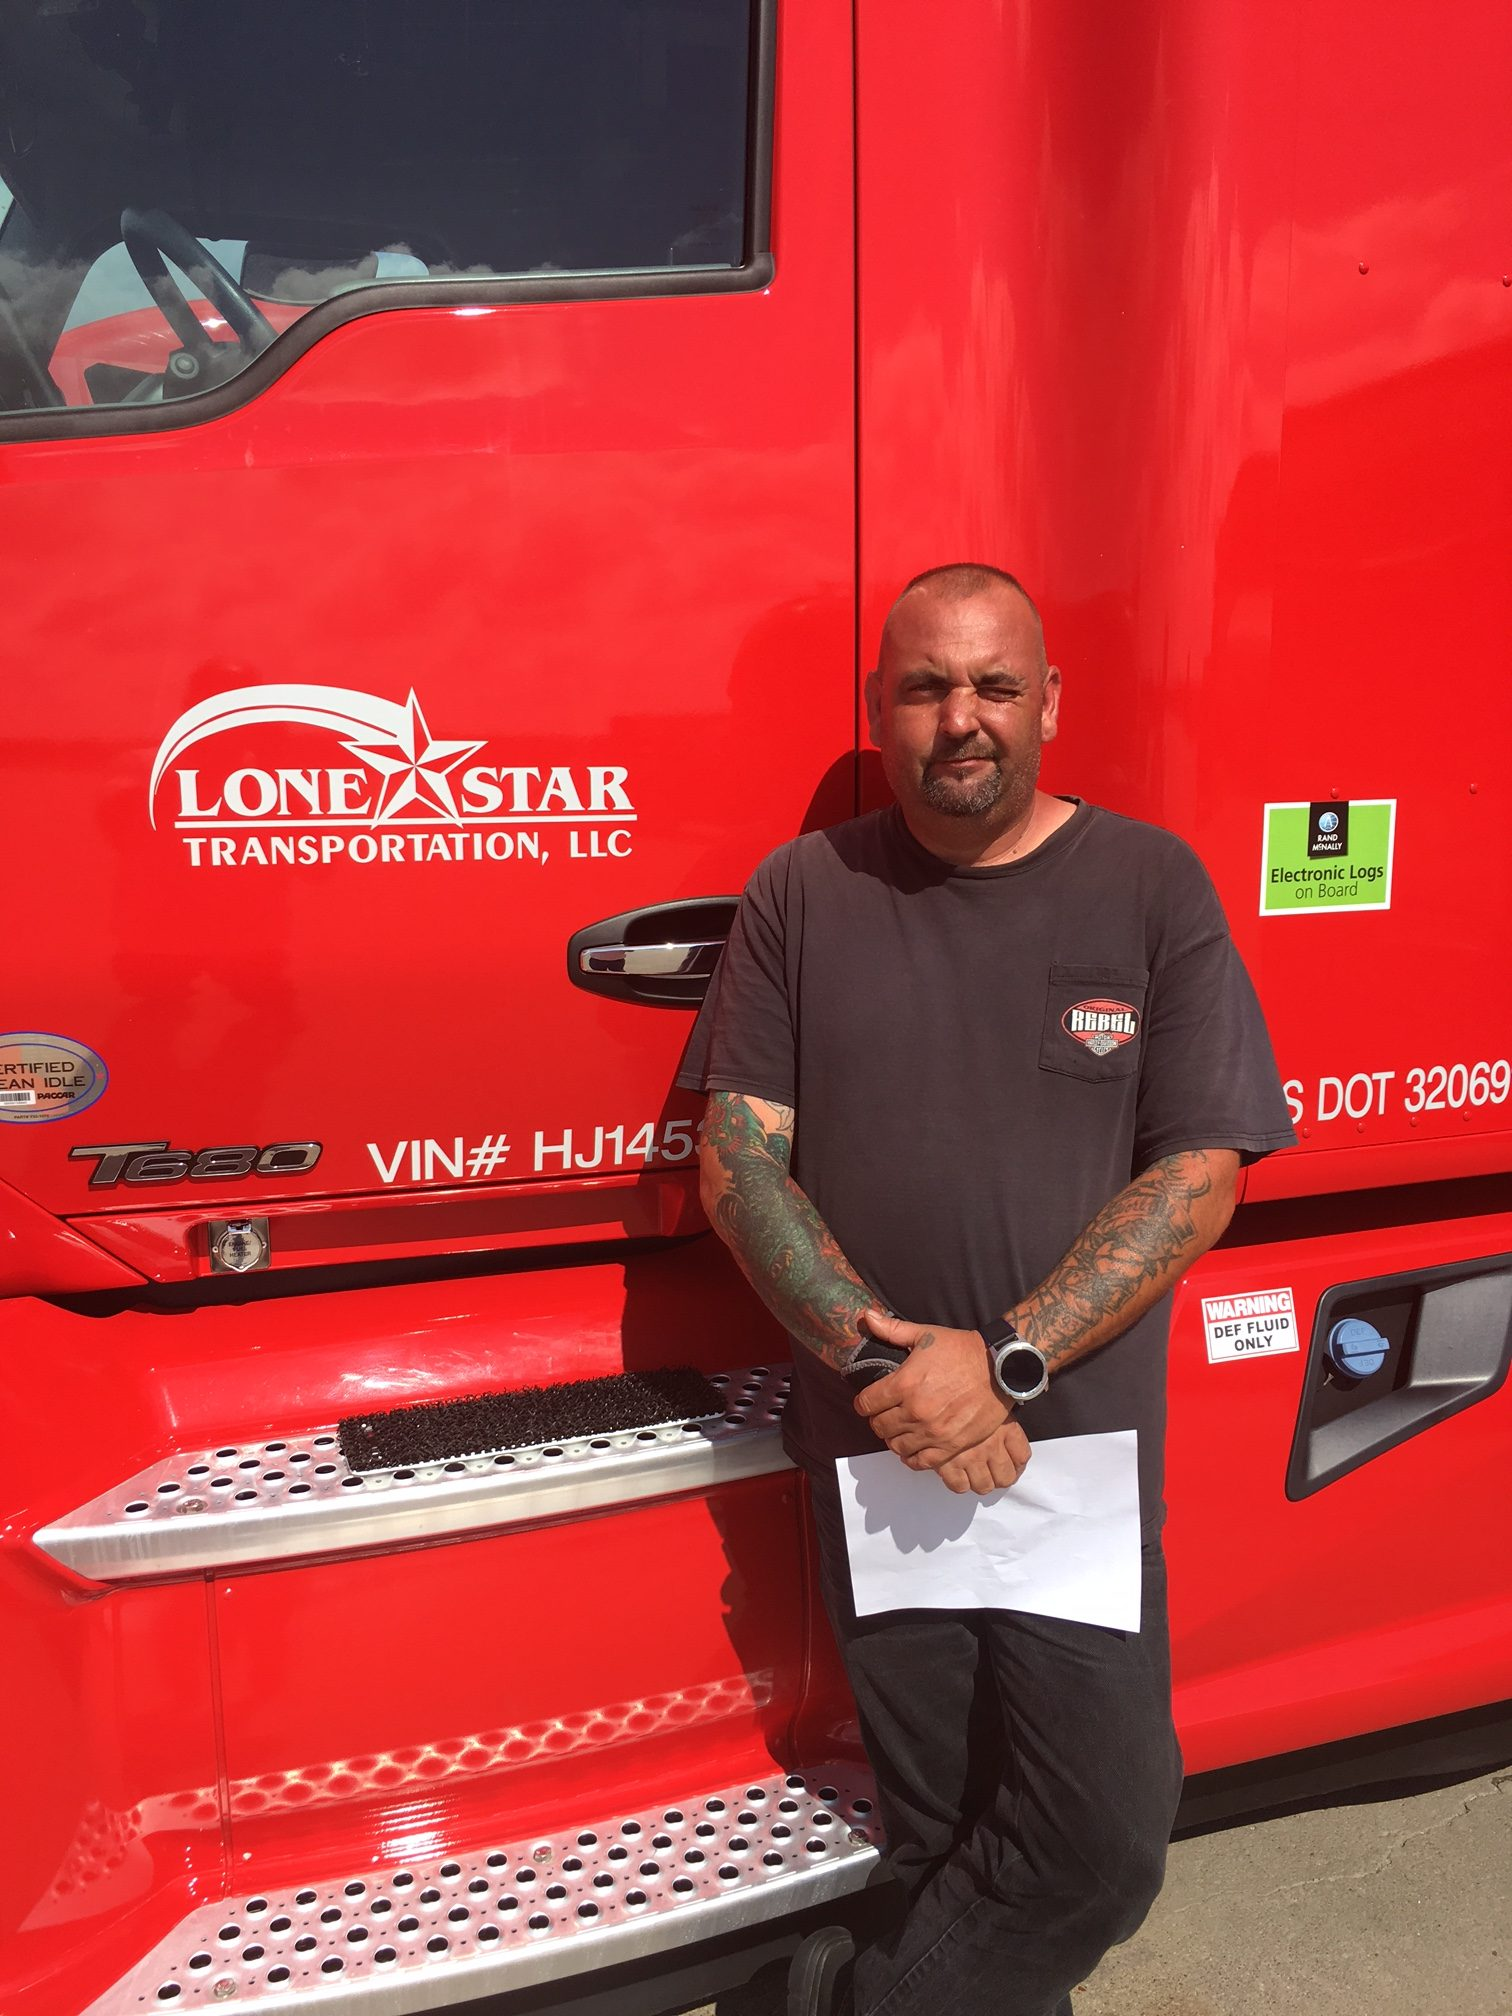 Vince Piazza, who drives for Lone Star Transportation in Fort Worth, owned by Daseke Inc., is among the new Daseke trucker shareholders thanks to the Addison company's stock giveaway. (Daseke Inc.)